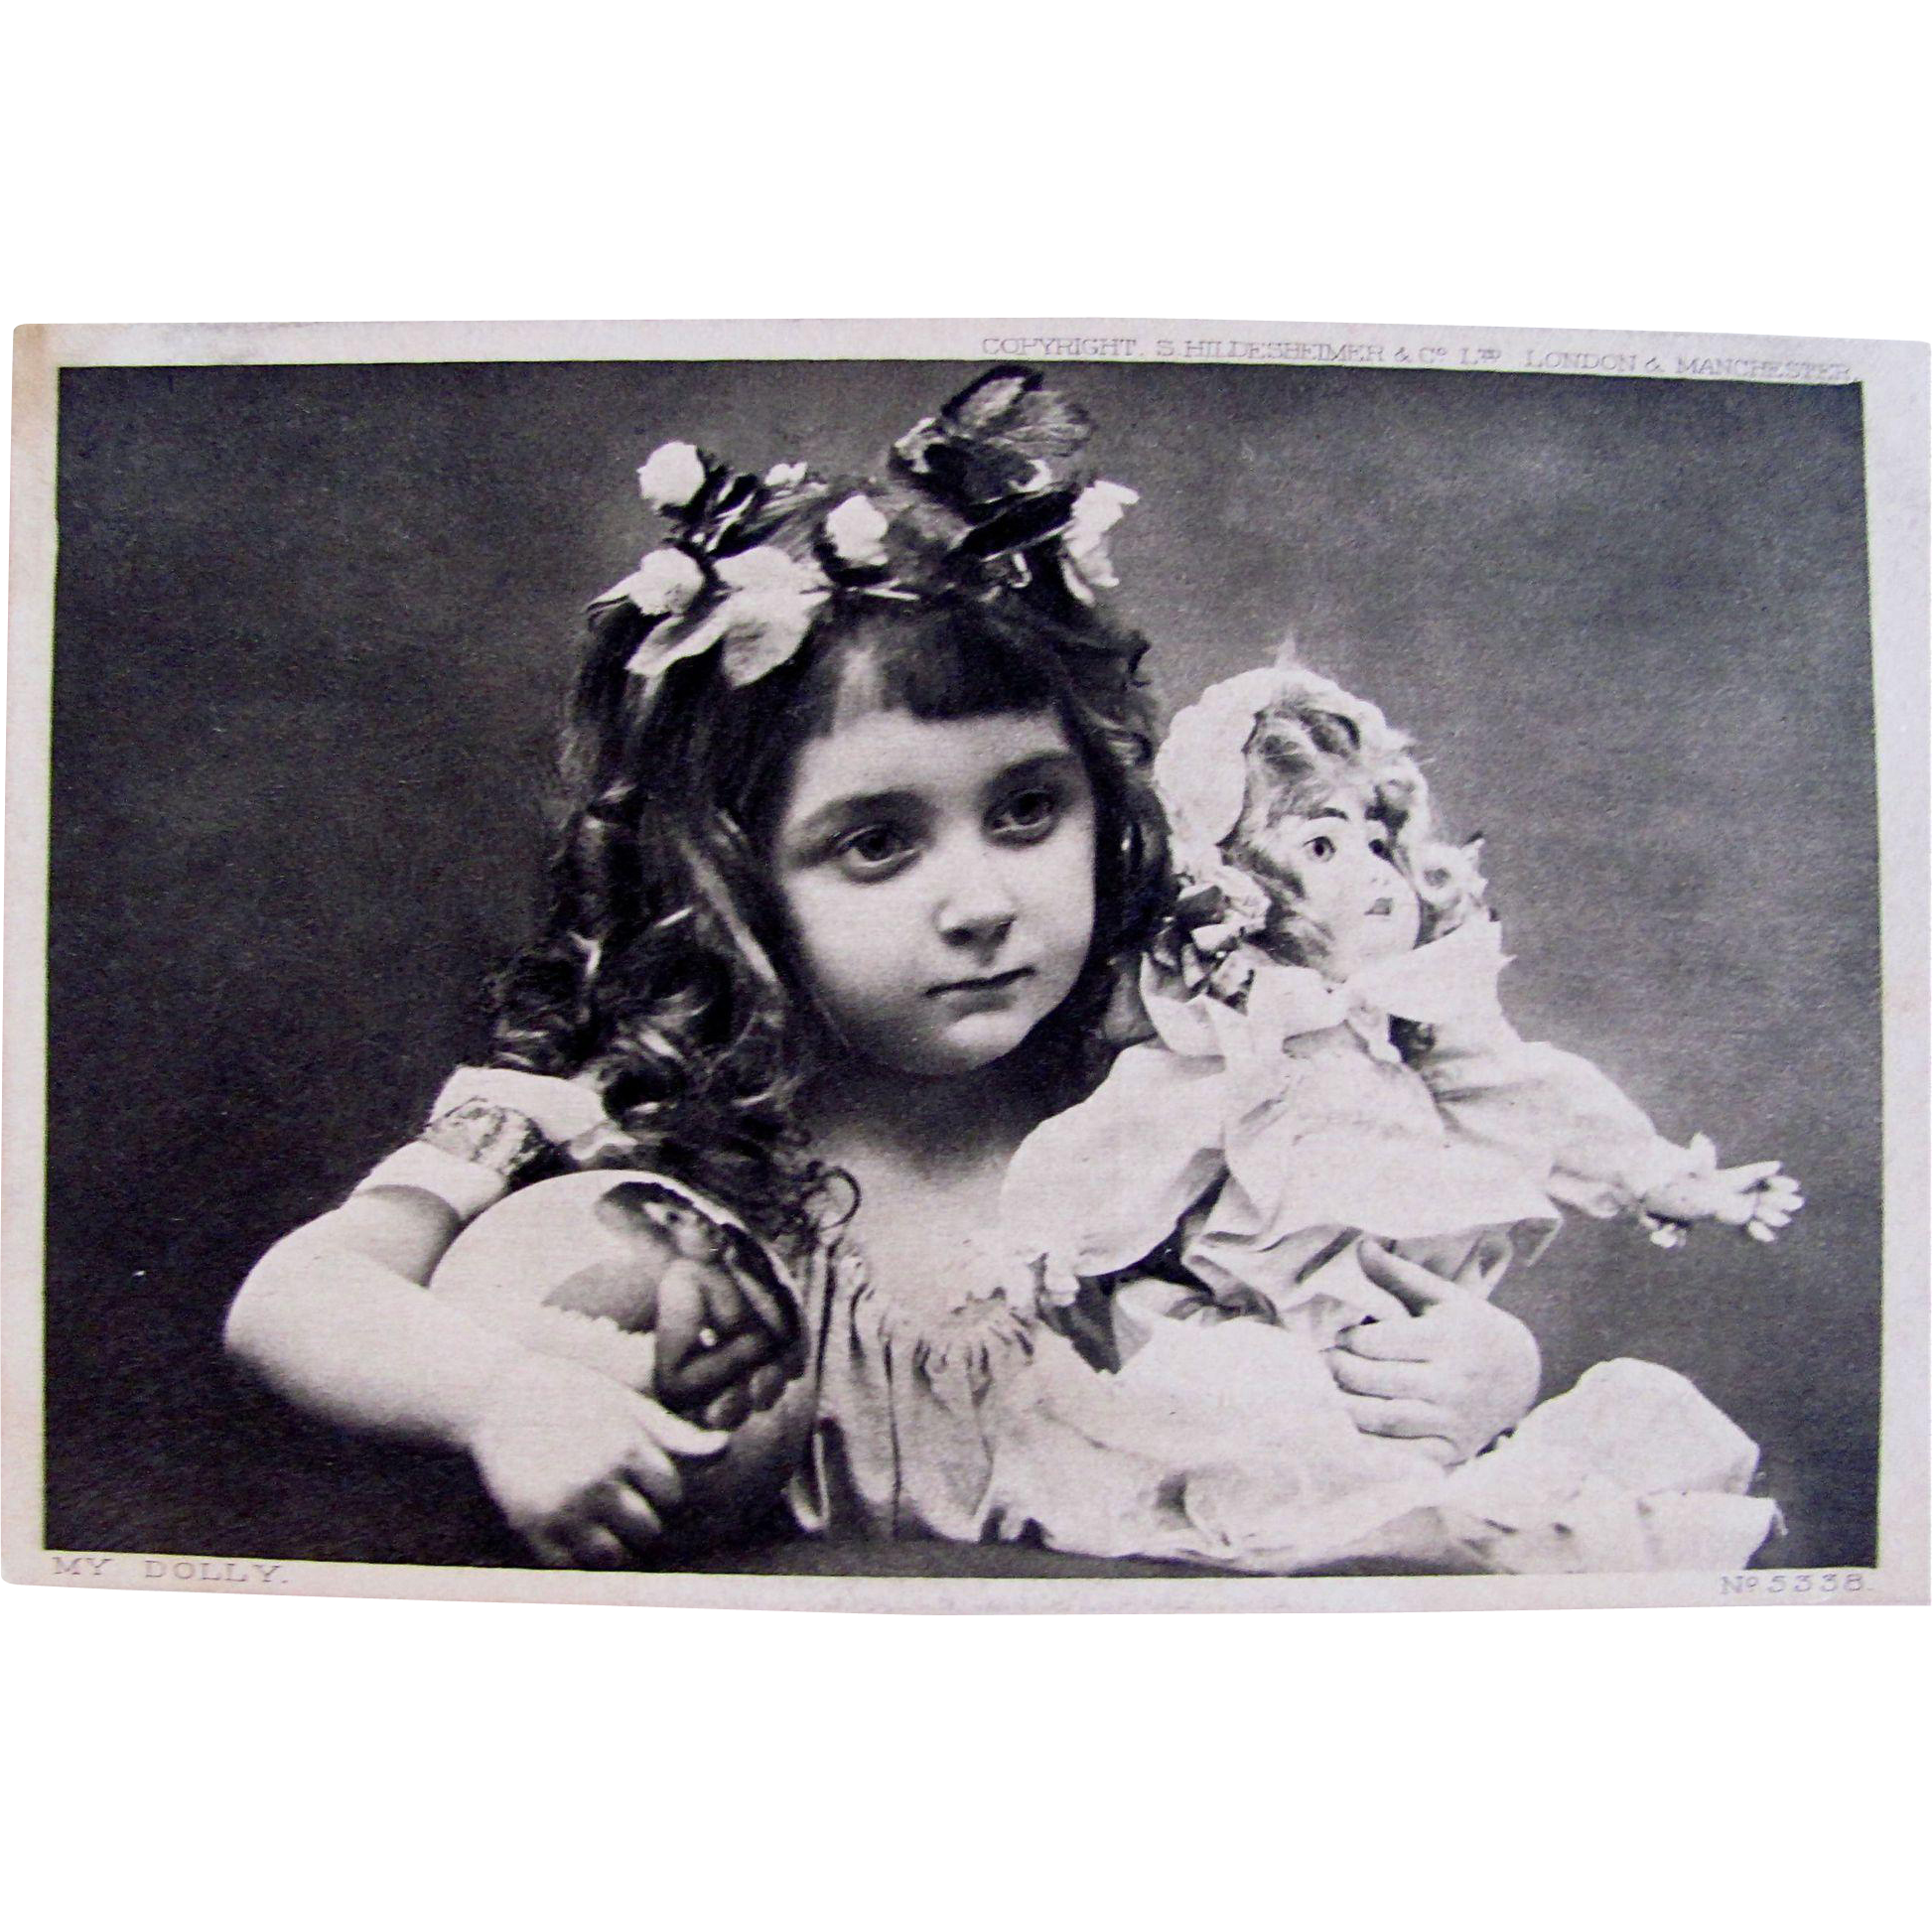 Real Photo Post Card, My Dolly, Little Girl with Bisque Doll, Divided Back, Unused, Vintage 1900s